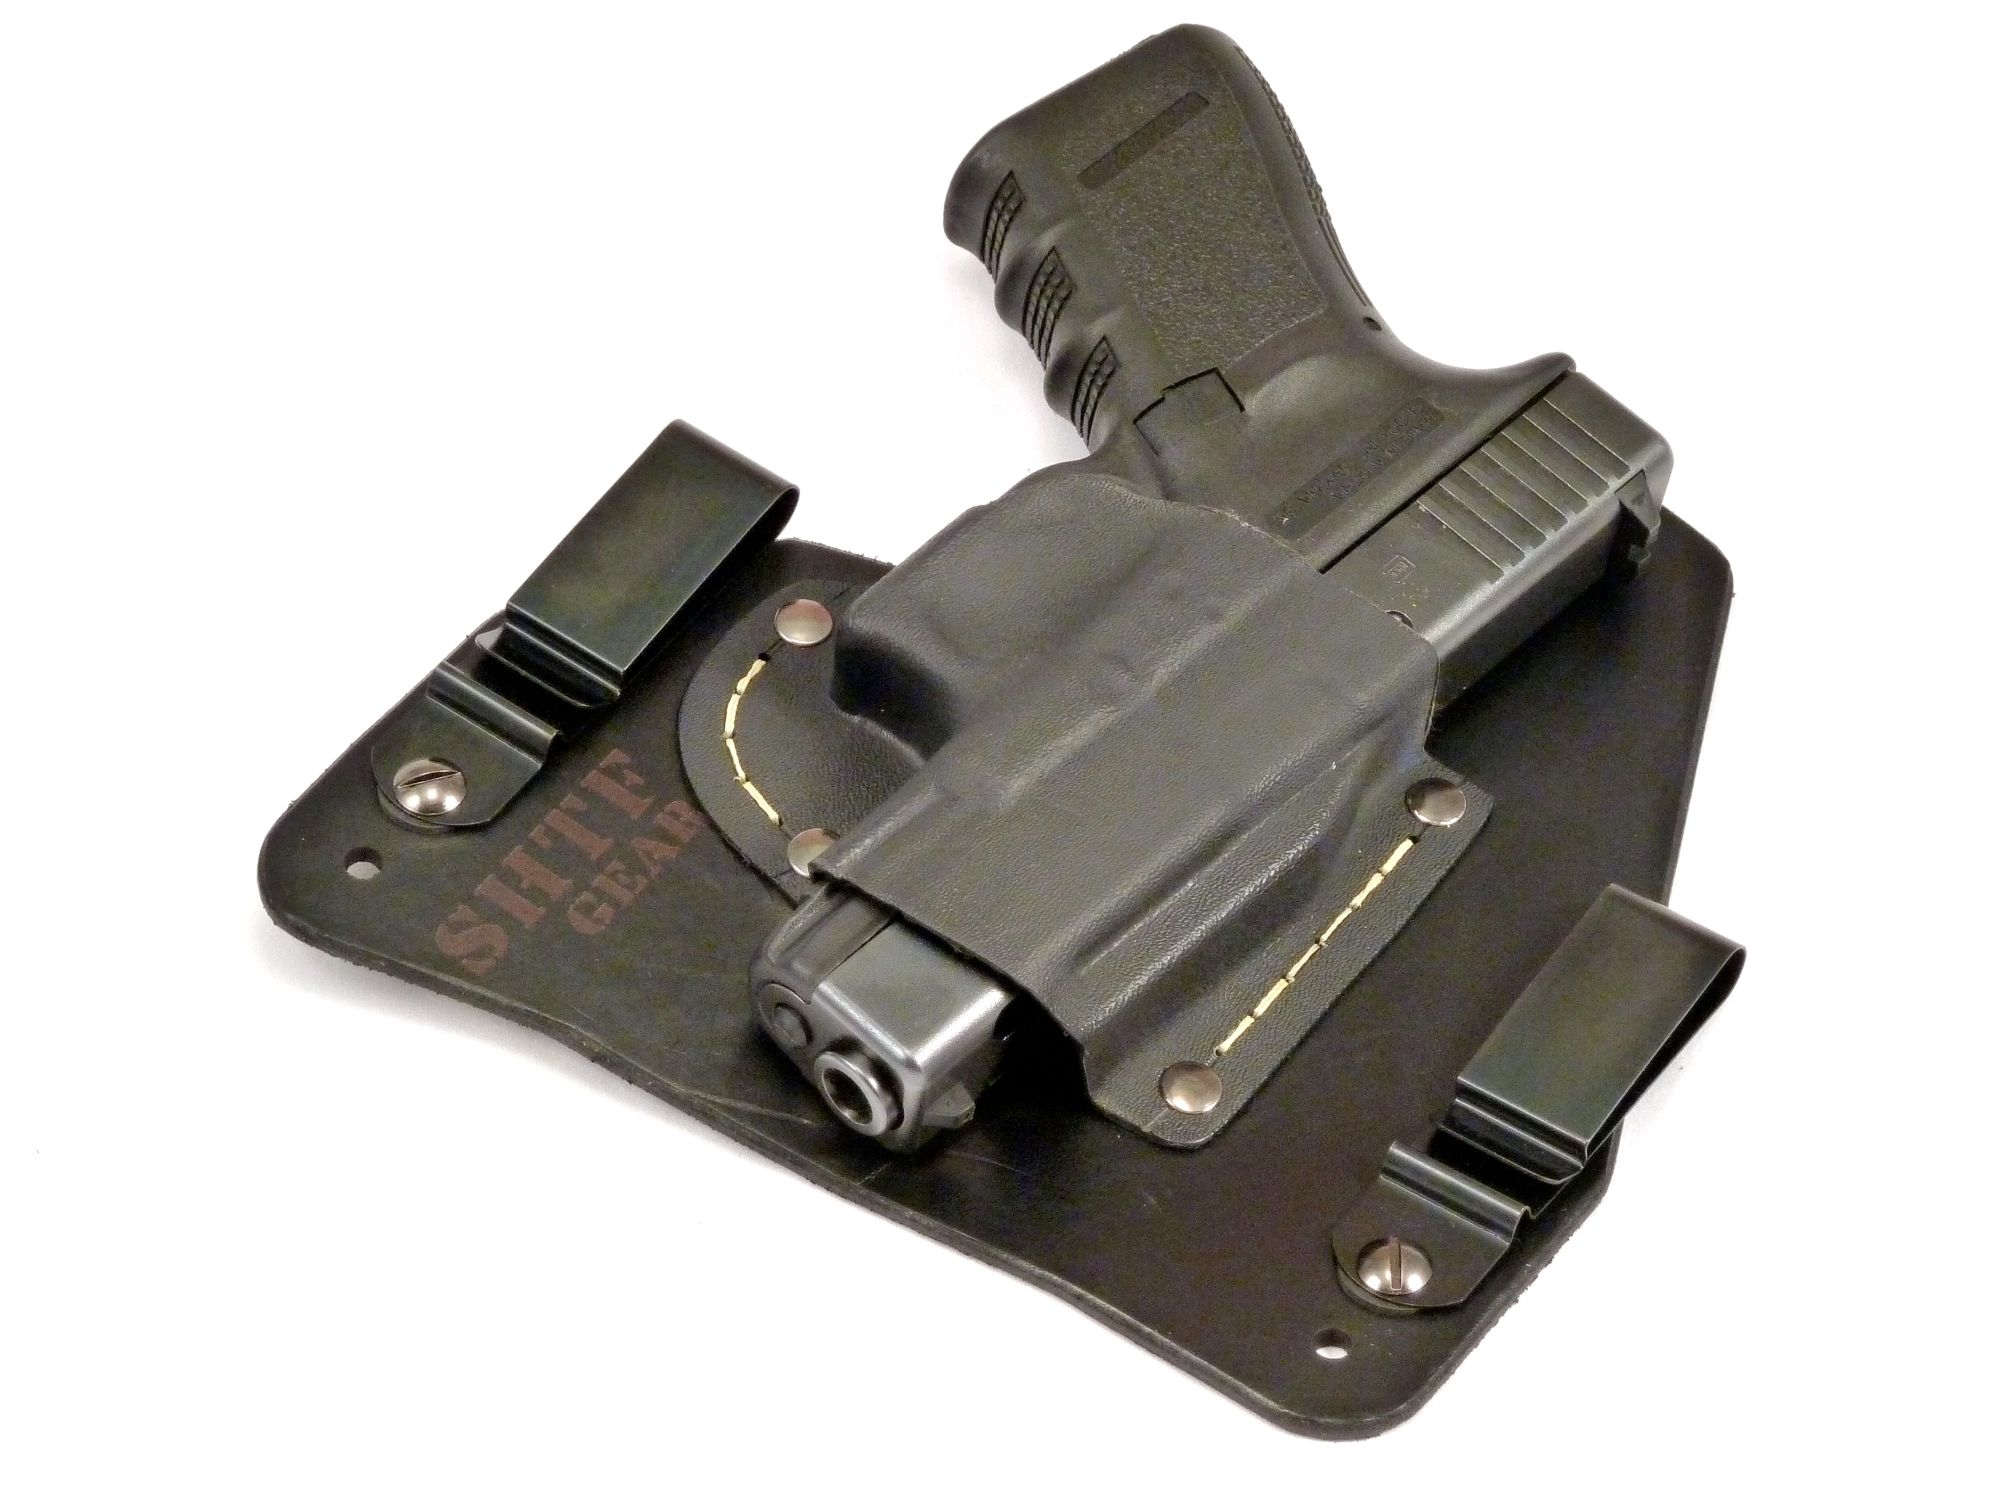 advice on holsters for G23-glock-gun-front-right-1500.jpg